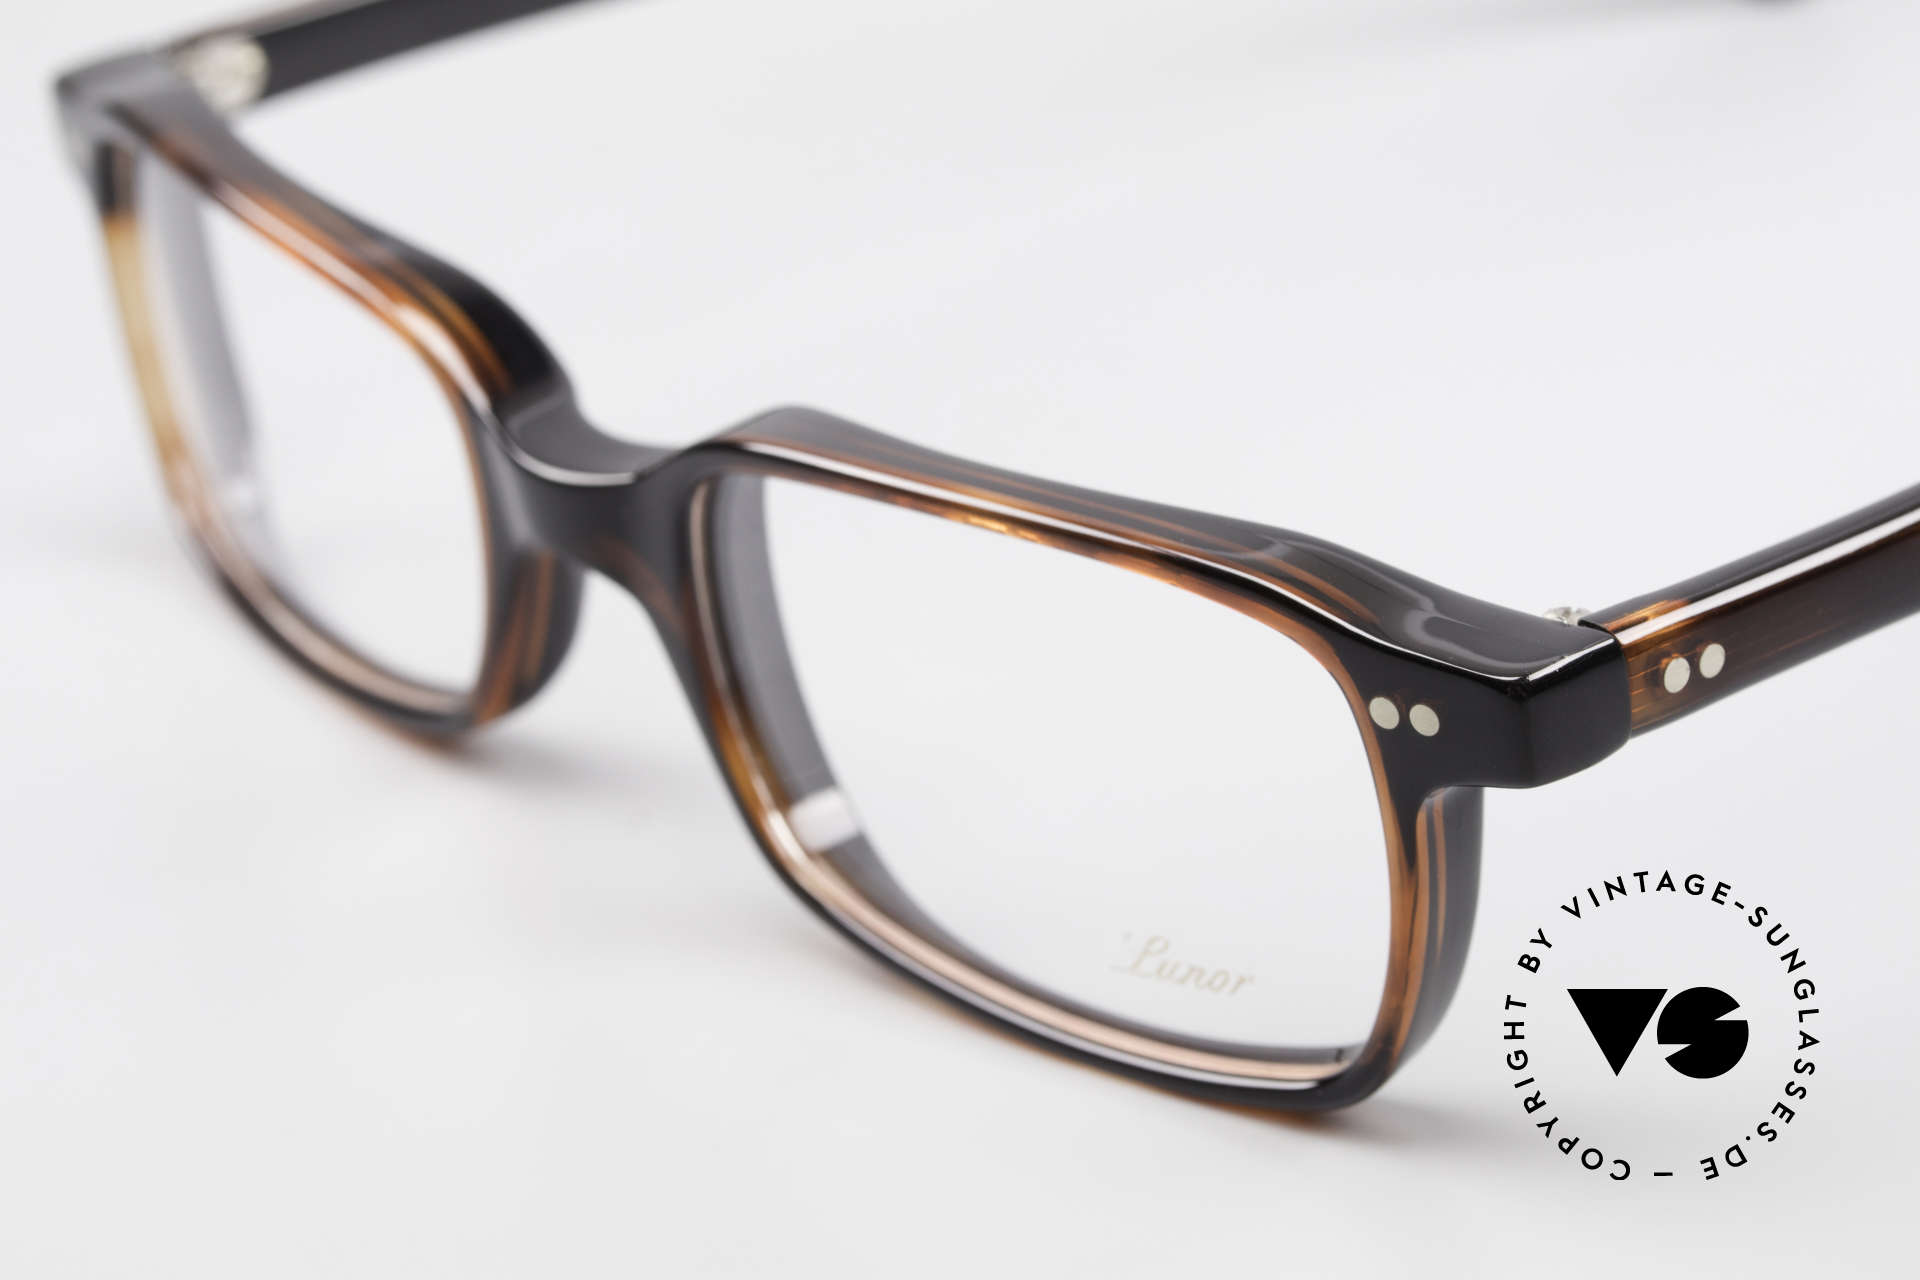 Lunor A55 Square Lunor Glasses Acetate, 100% made in Germany & hand-polished (a masterpiece), Made for Men and Women